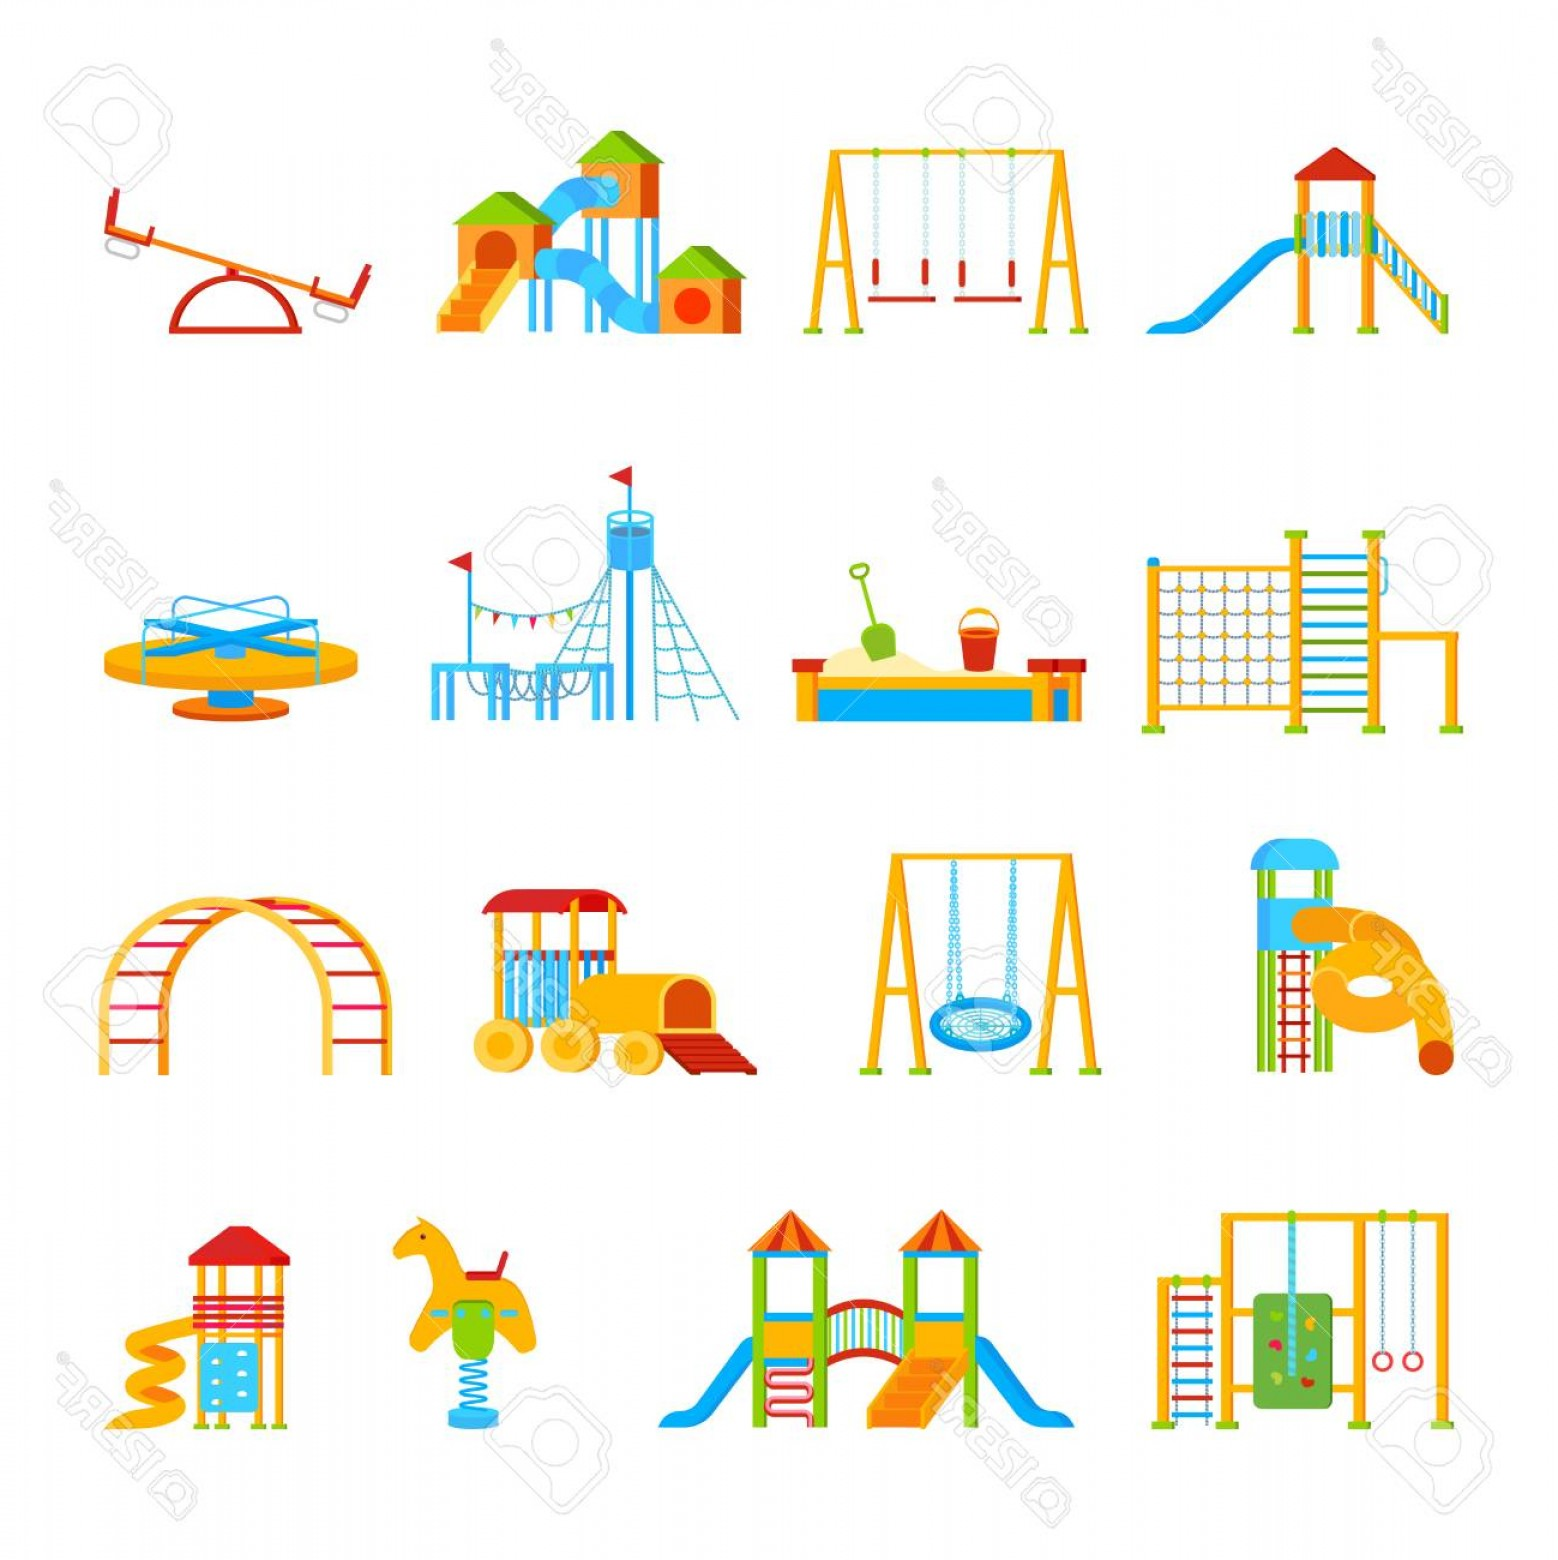 Playground Equipment Vector Art: Photostock Vector Sixteen Isolated Childrens Playground Equipment Elements Set With Flat Cartoon Icons Of Carrousels S